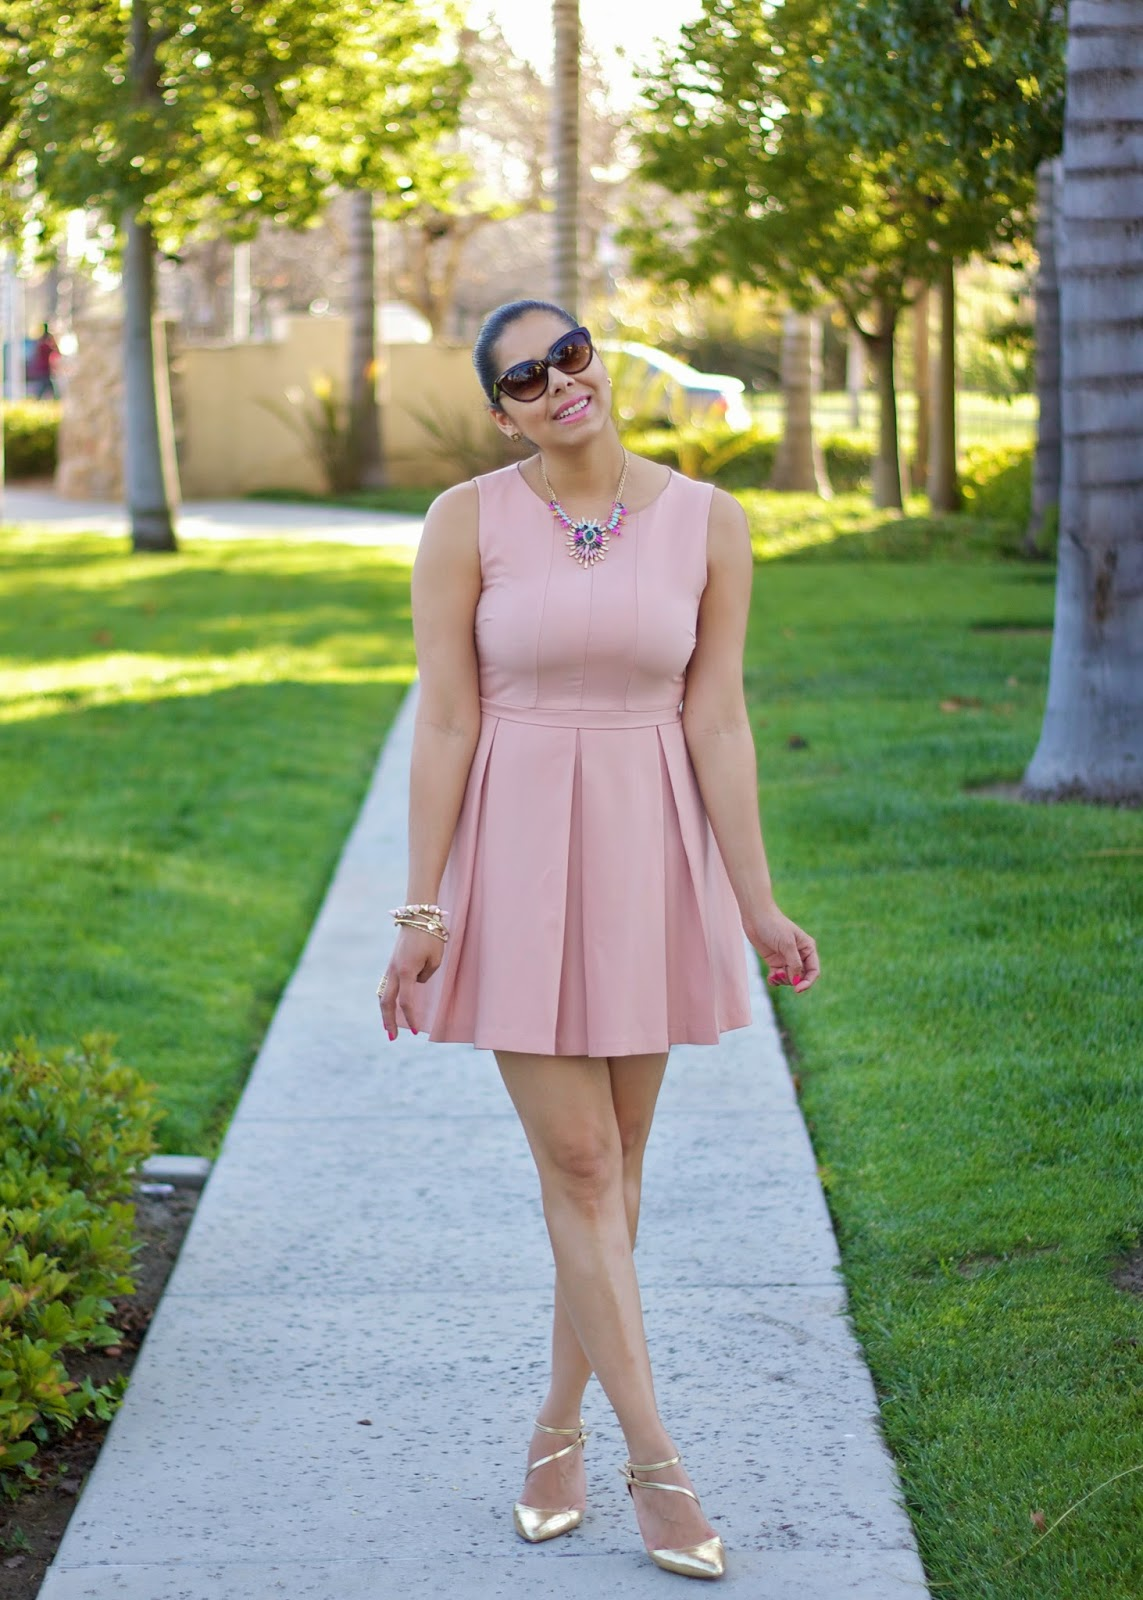 Luxurious Ballerina, Ballerina Outfit, Pale Pink fit and flare dress, ASOS gold strap shoes